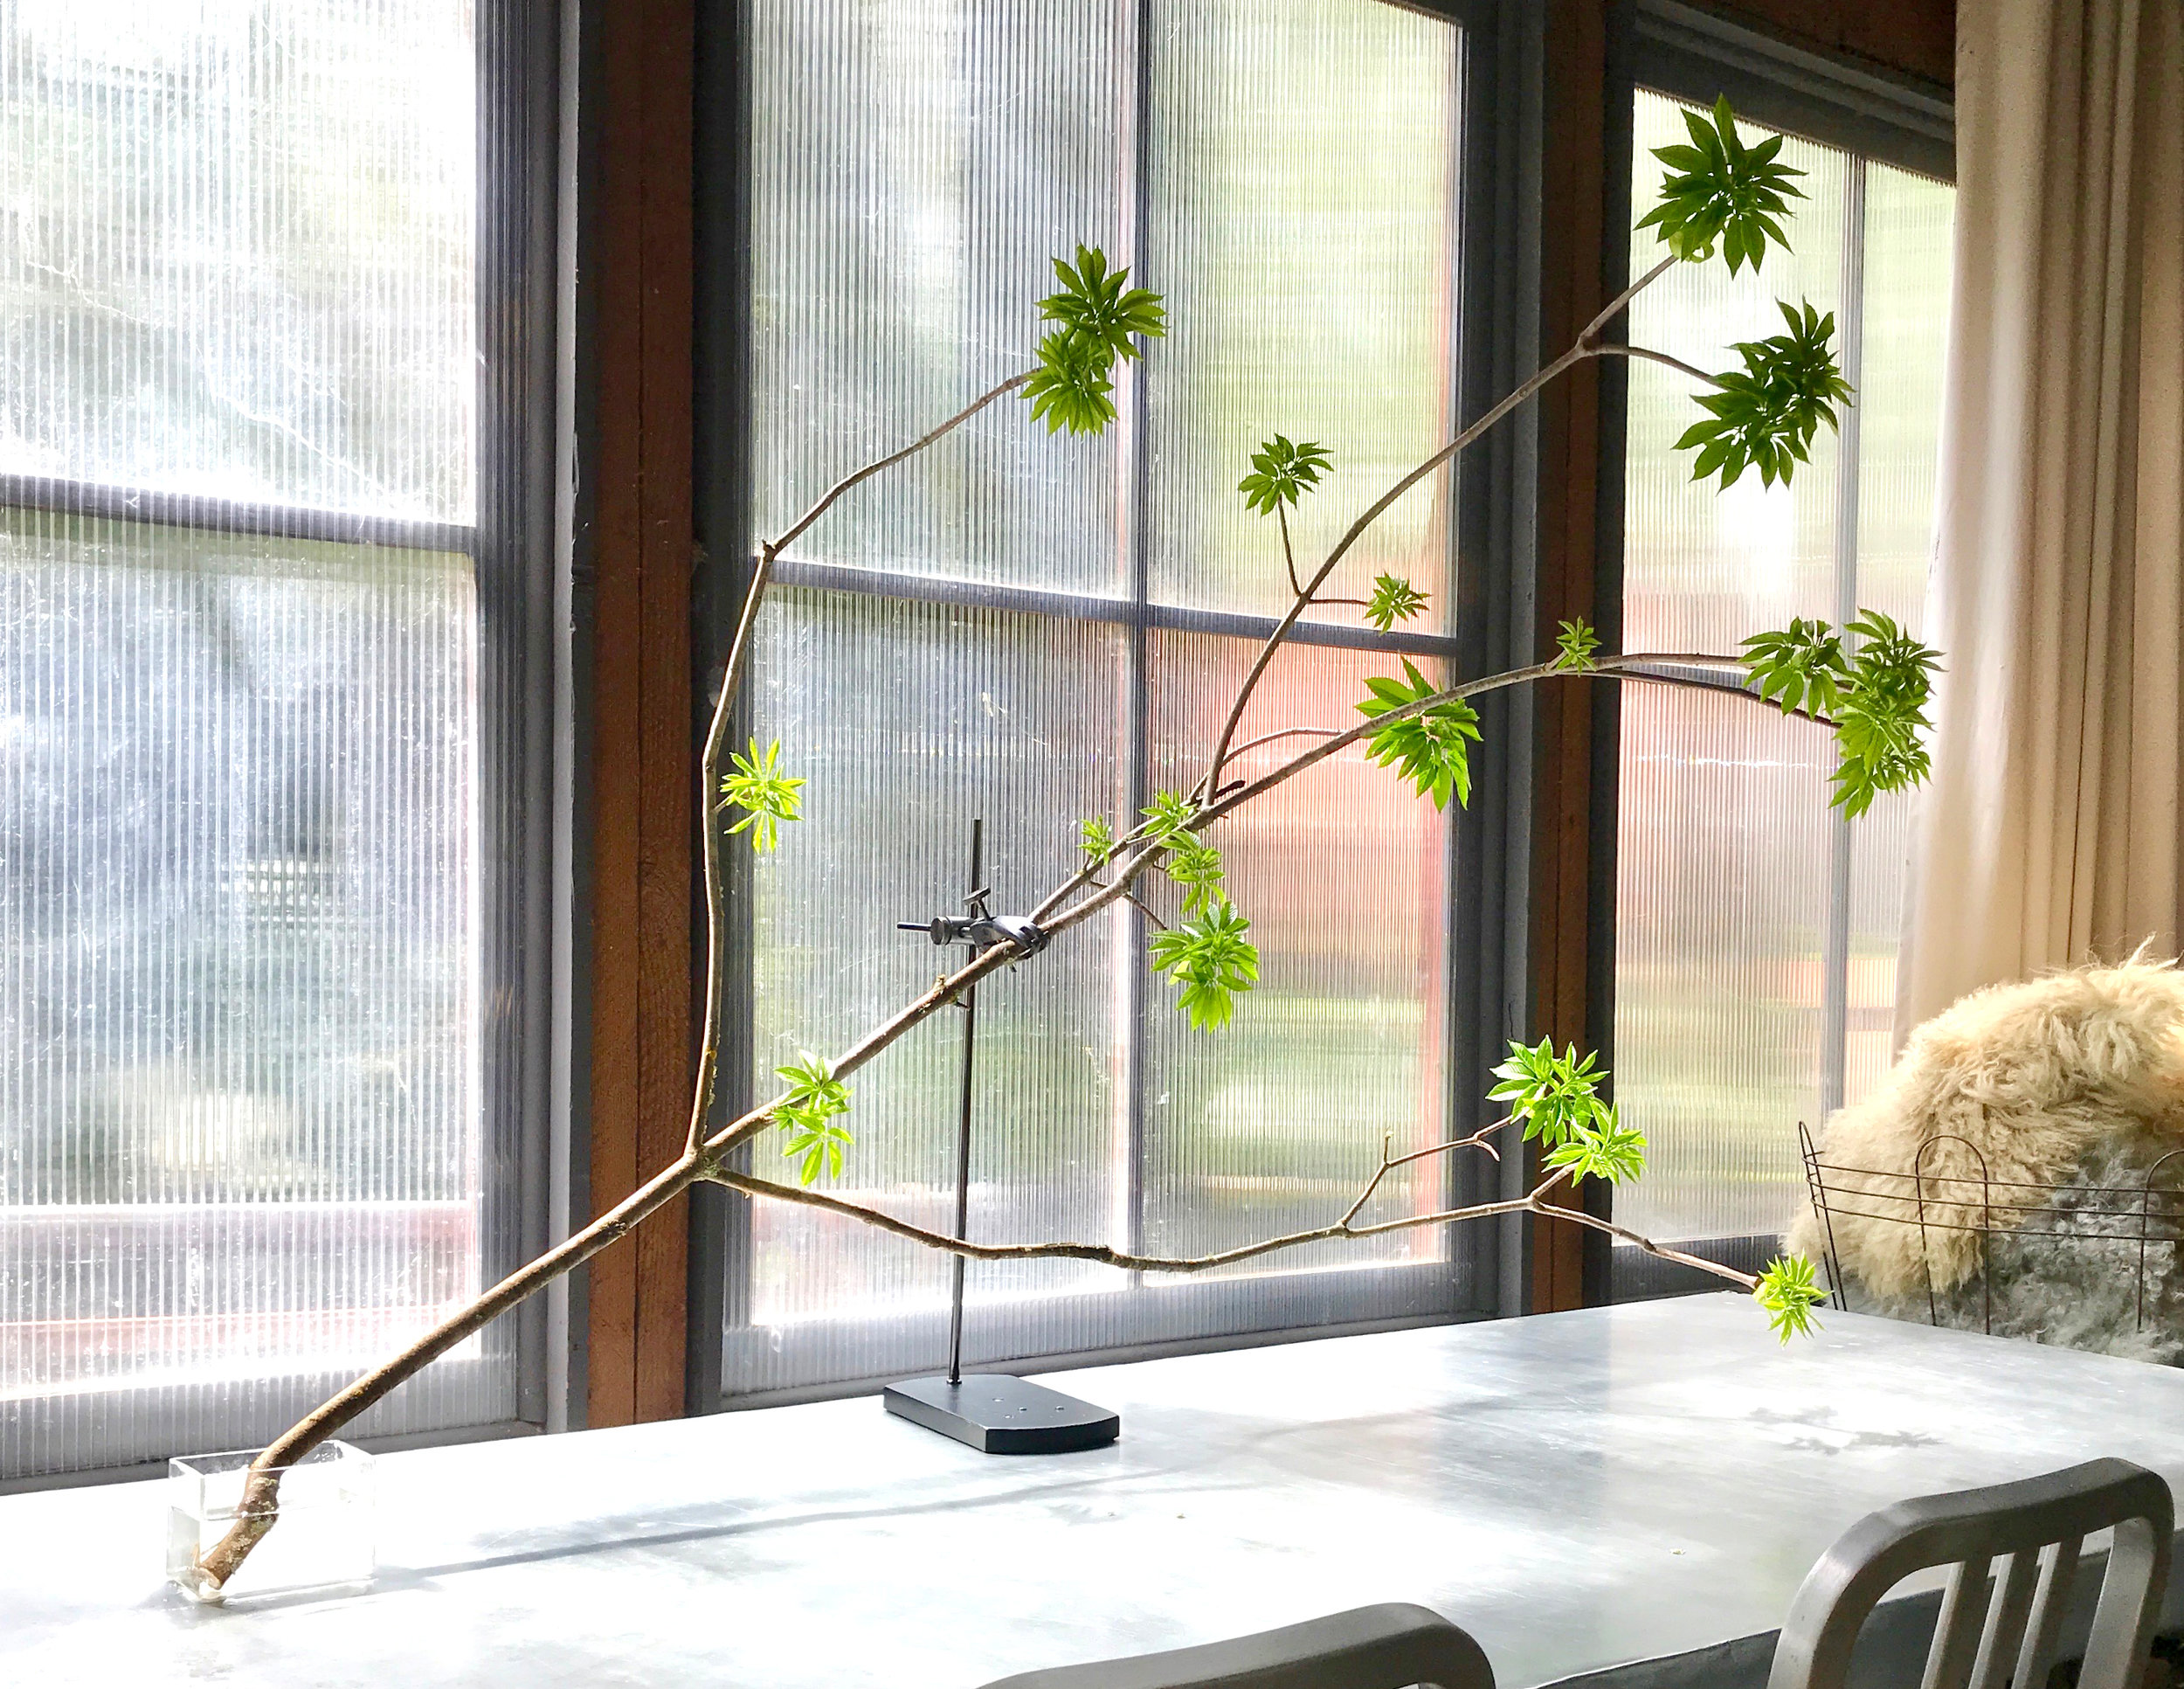 The Table Mount Featuring Budding Buckeye Tree Branch